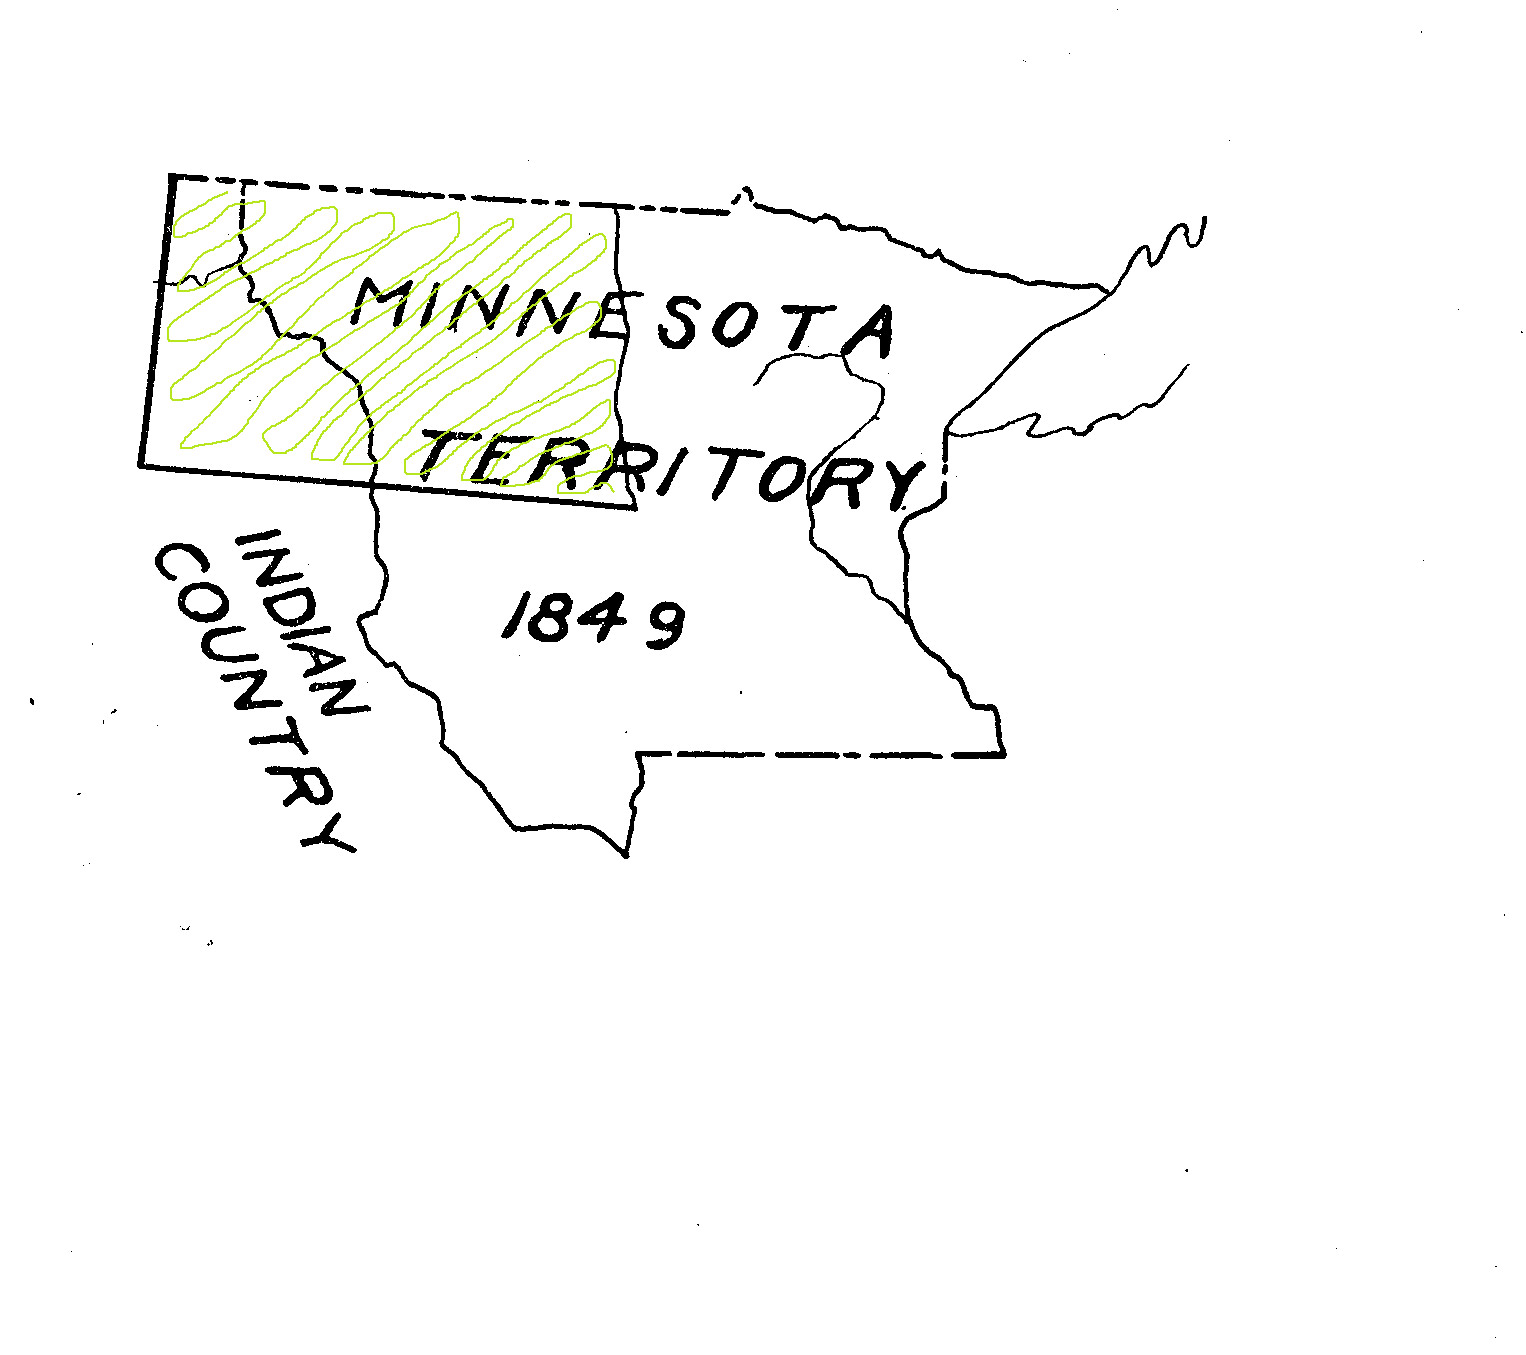 In 1849, Minnesota Territory took on the eastern portion of North and South Dakota. Though this territory was smaller than some of the earlier sprawling territories, Minnesota gave little attention to any part west of the Red River except for the small border community of Pembina.